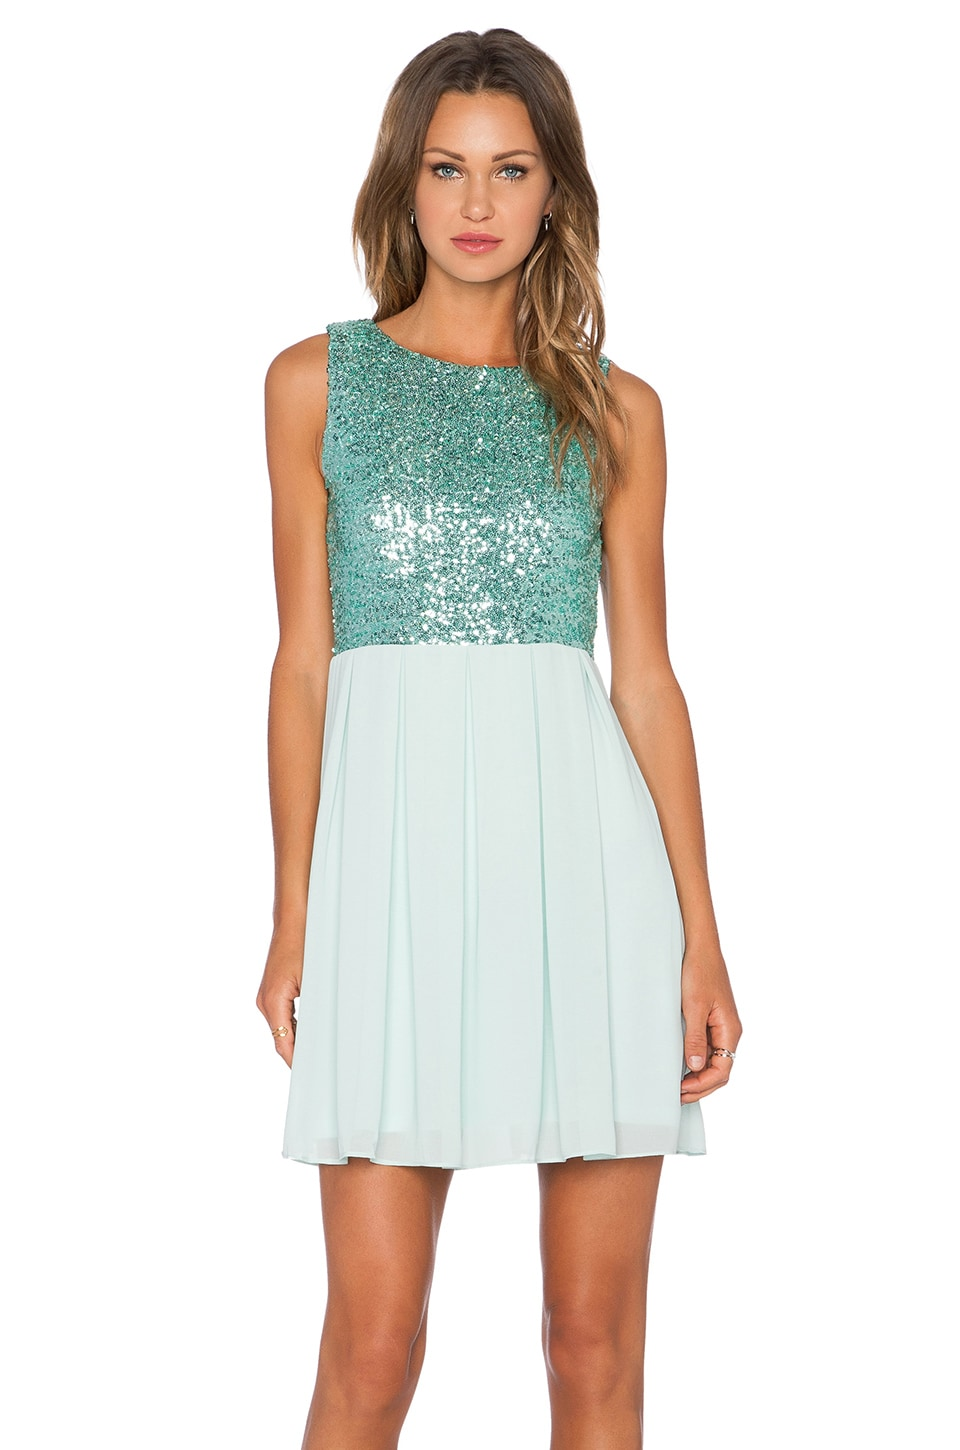 TFNC London Sarah Sequin Dress in Mint